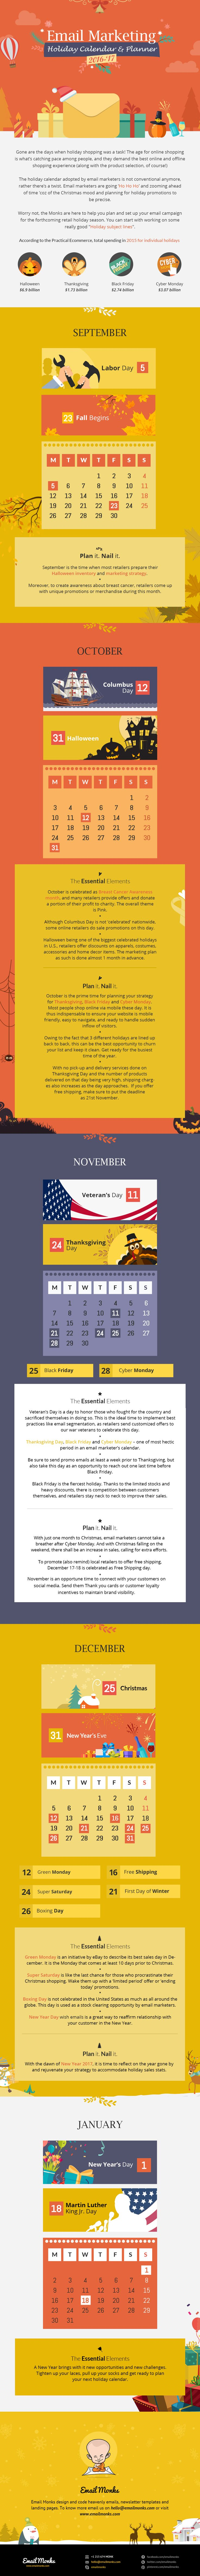 email-marketing-holiday-calendar-infographic                                                                                                                                                                                 More